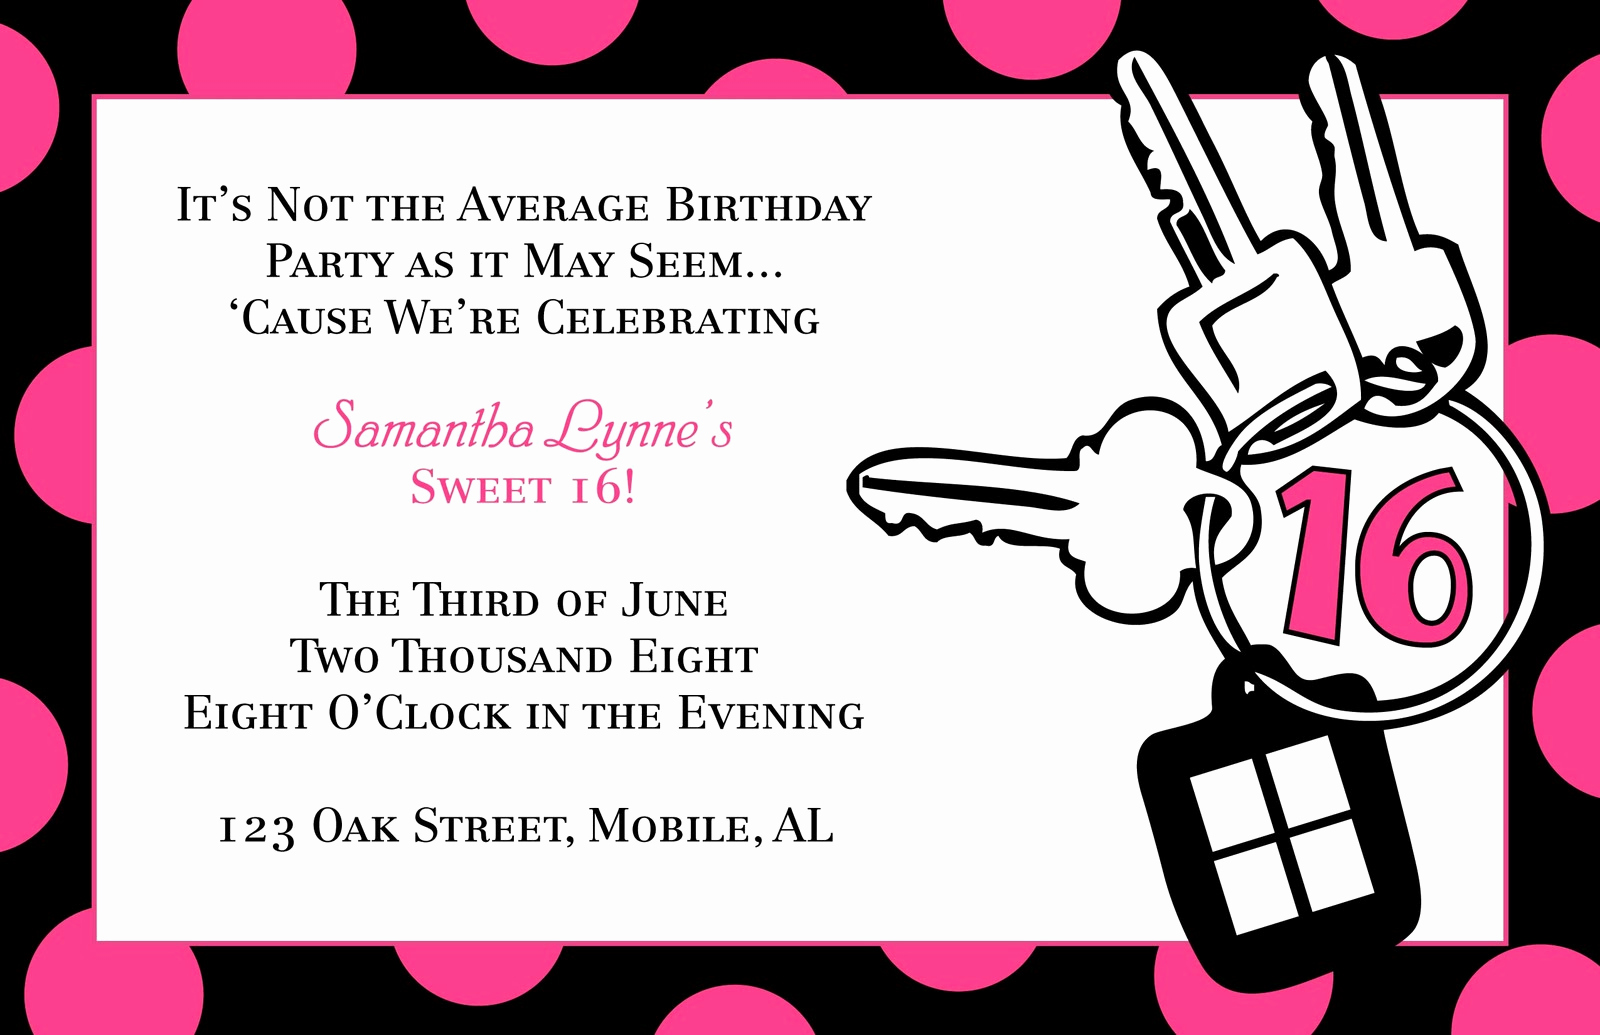 Sweet 16 Invitation Template Awesome Sweet 16 Invitation Quotes Quotesgram